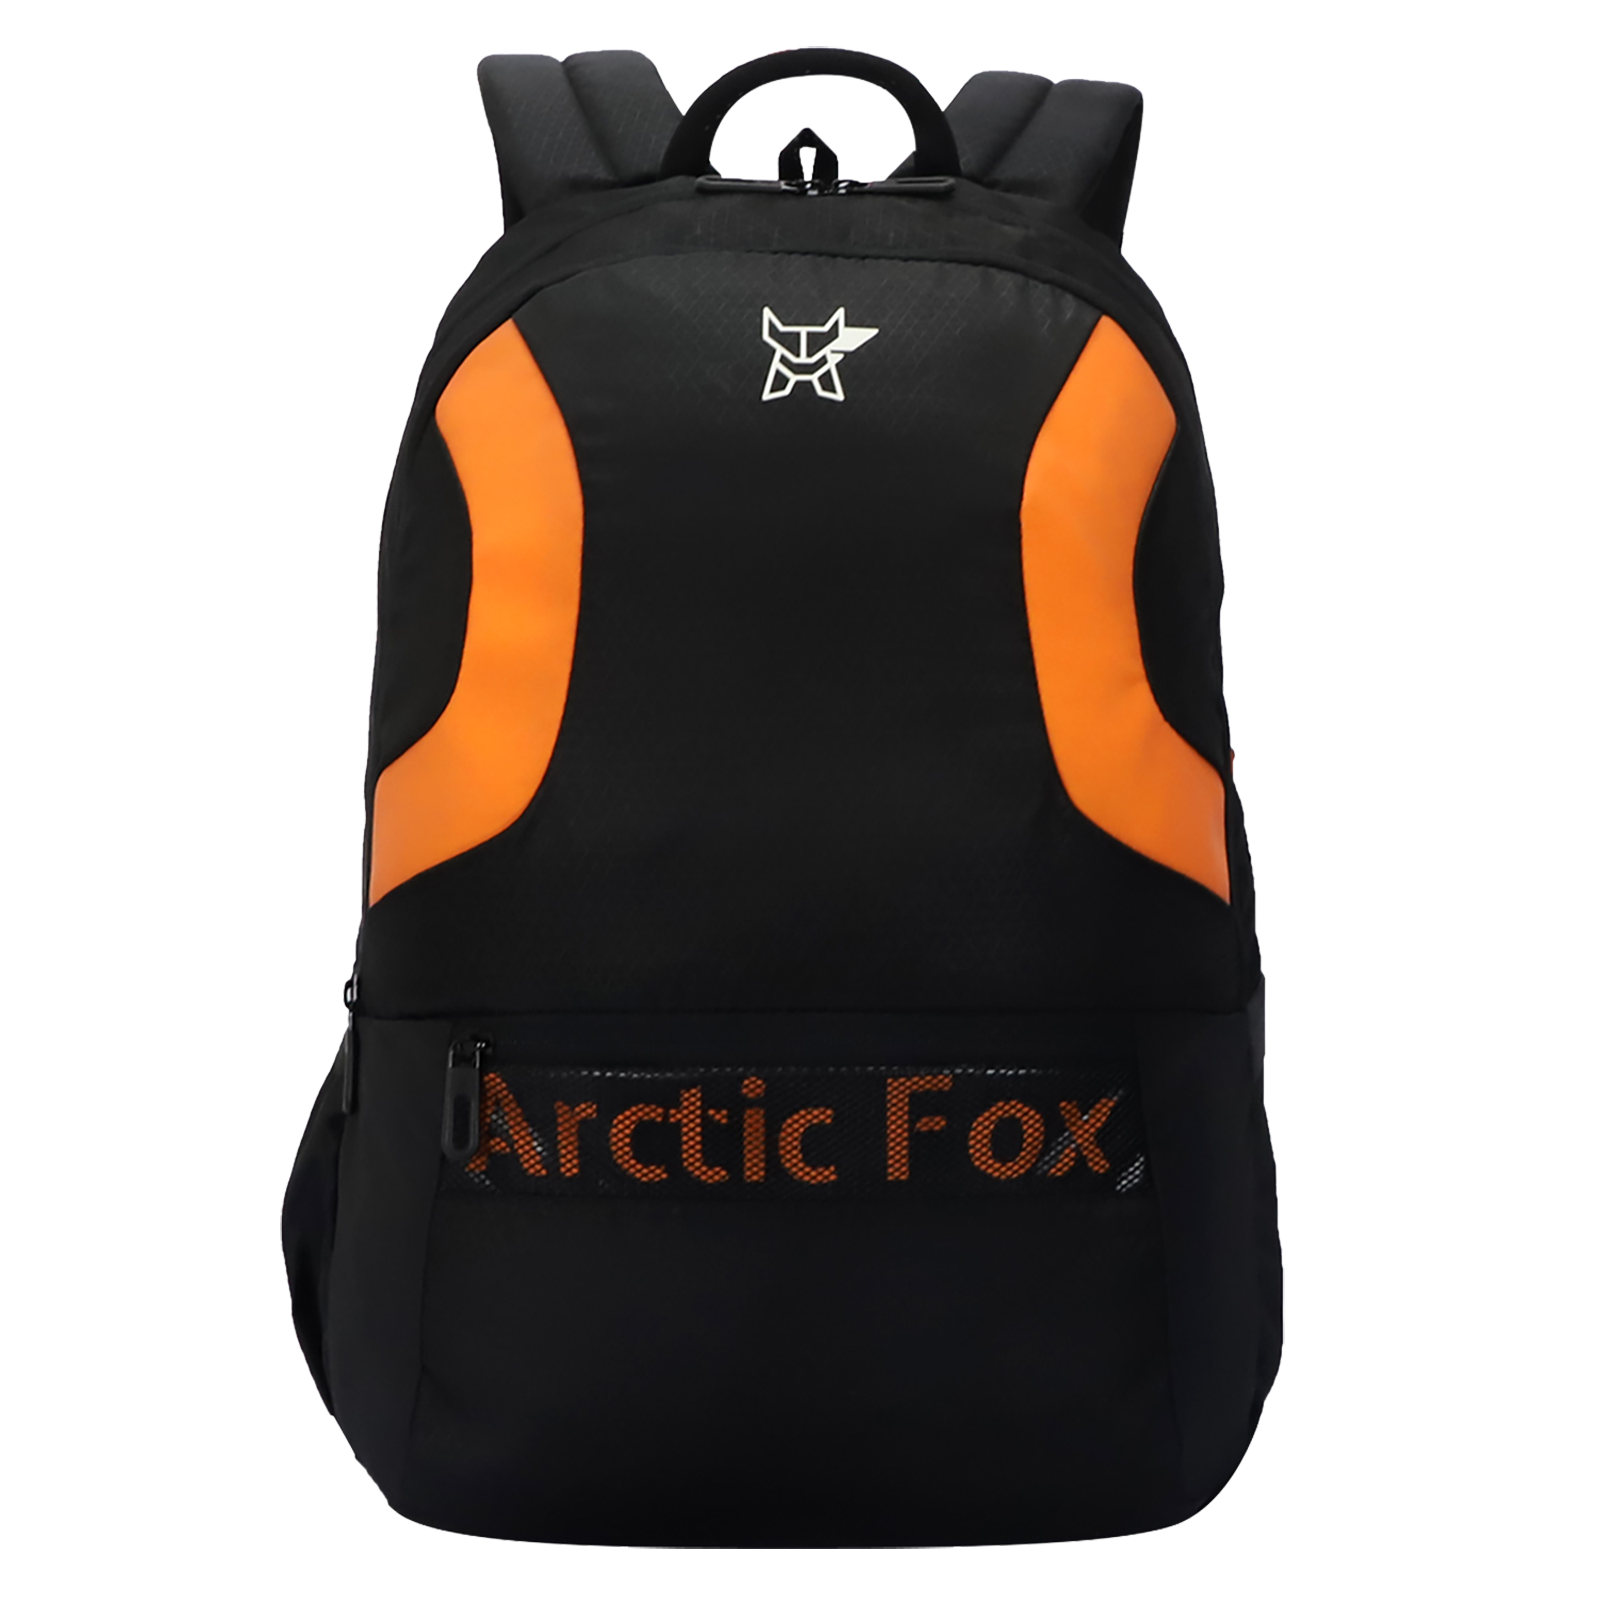 Arctic Fox Colour Changing 32.5 Litres PU Coated Polyester Backpack (2 Spacious Compartments, FJUBPKORNON060033, Orange)_1